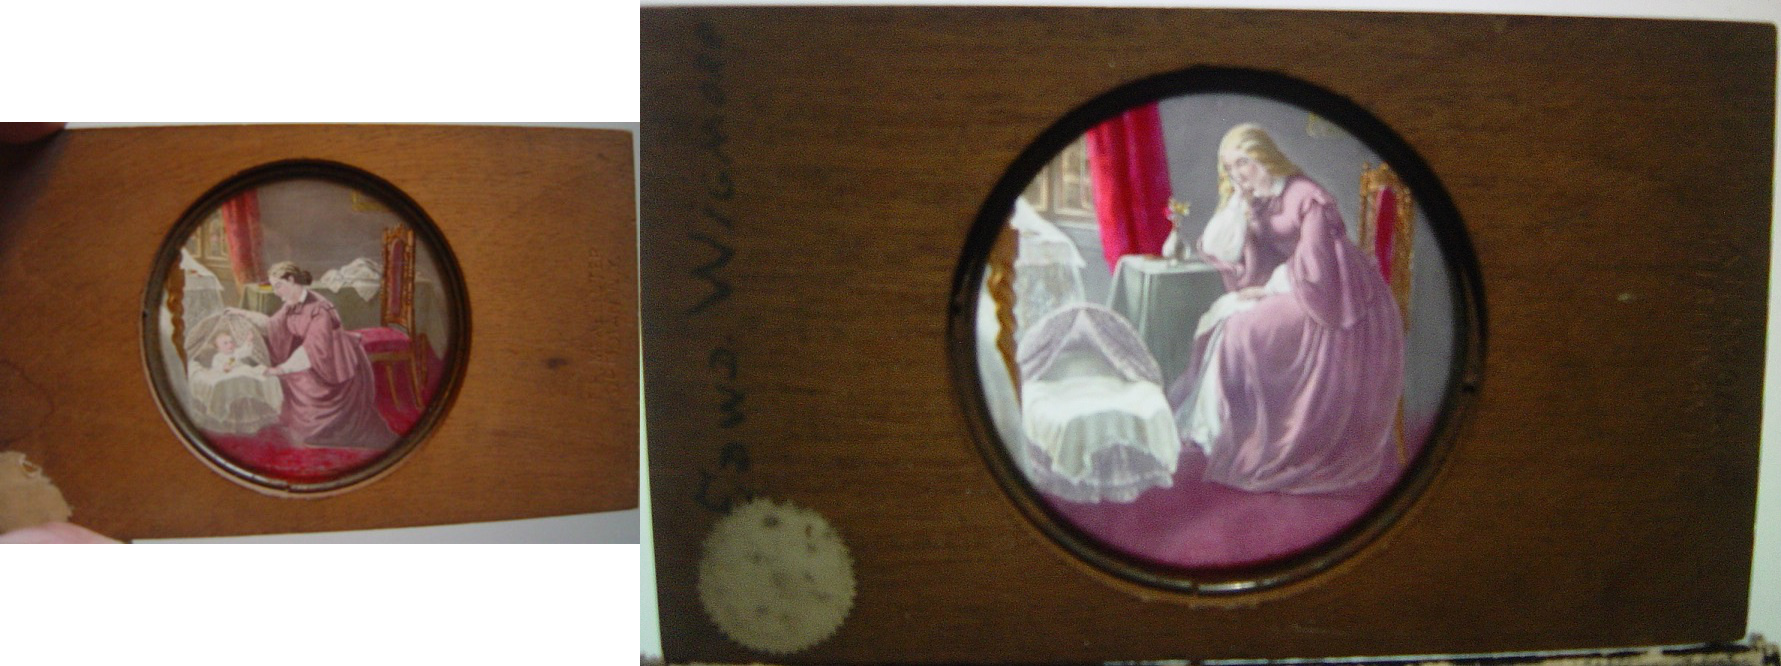 #15 - Magic Lantern 2 Slides Wooden Frame- Fondly Gazing